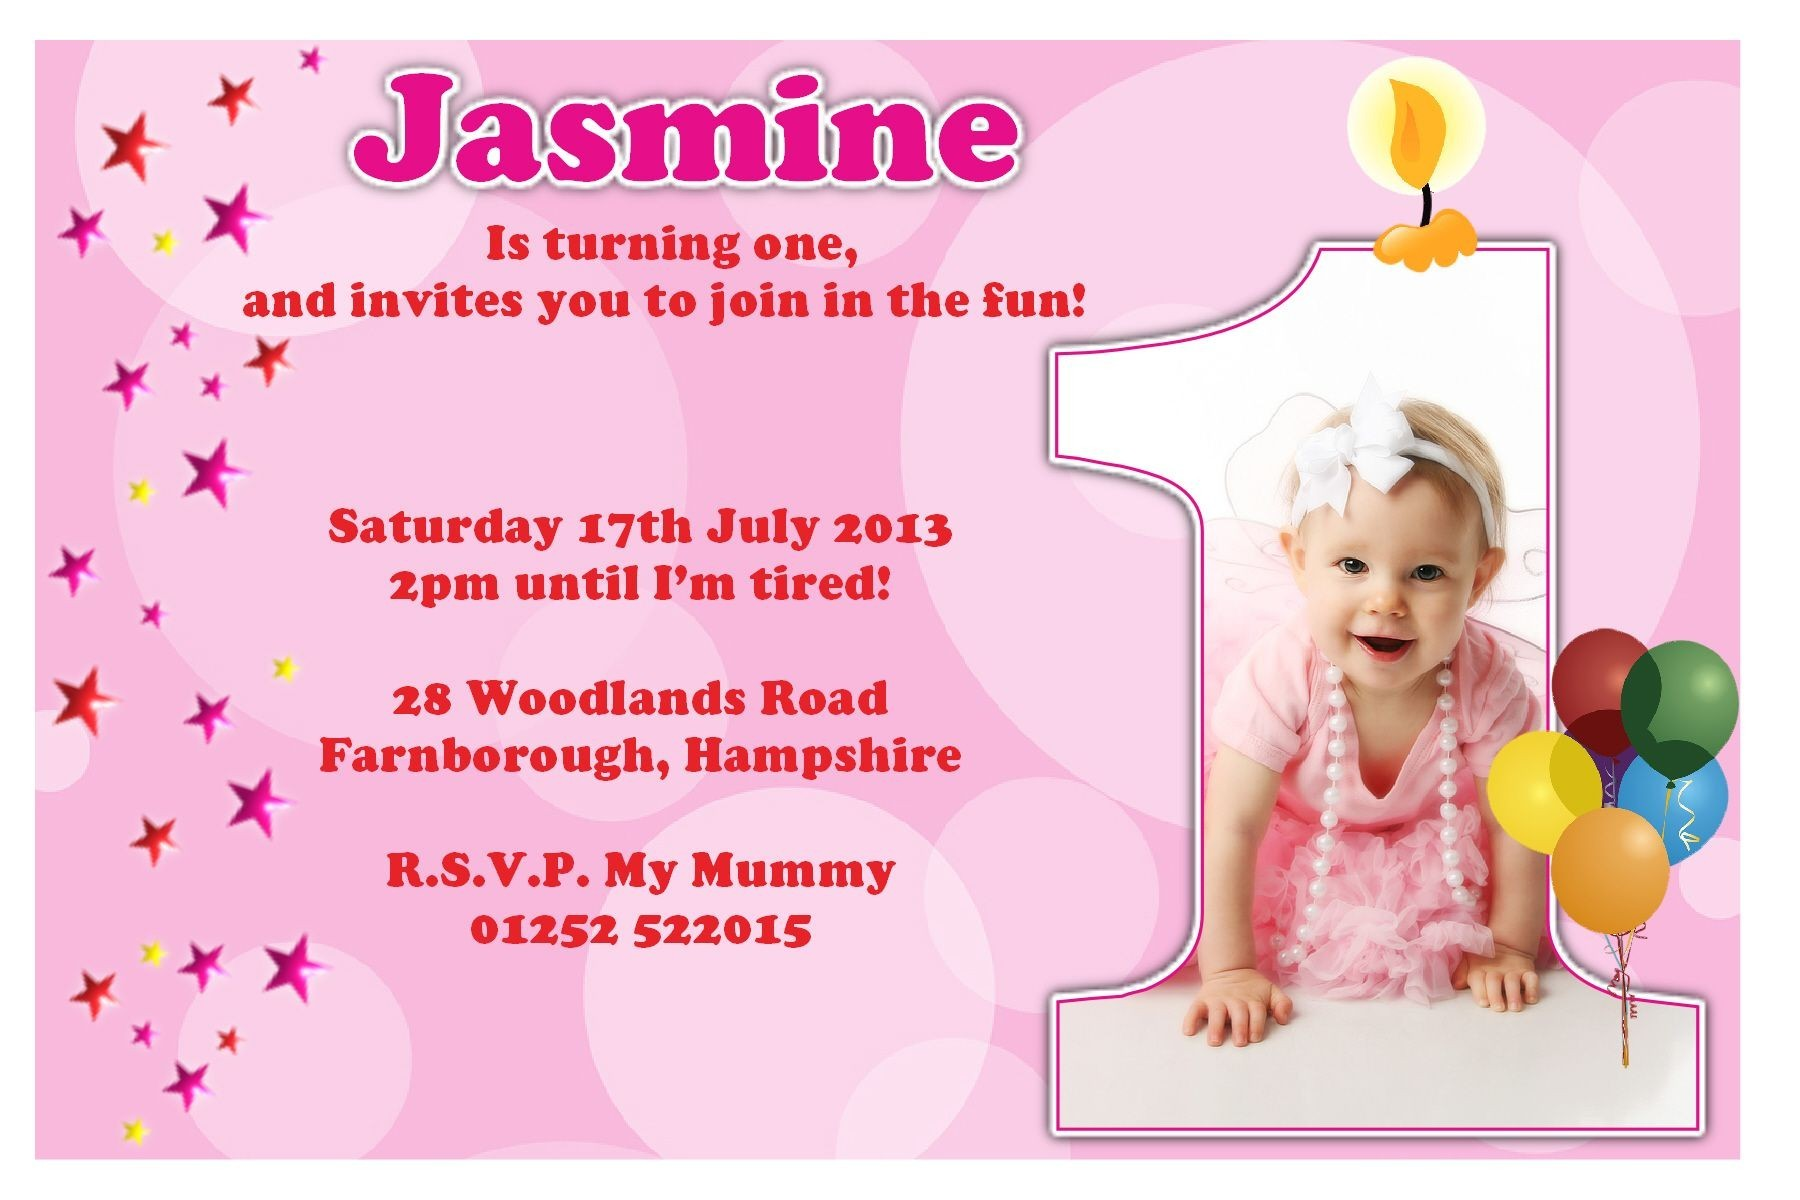 1st birthday invitation card ; birthday-invitation-sample-for-baby-girl-fresh-invitation-card-for-first-birthday-baby-girl-new-1st-birthday-of-birthday-invitation-sample-for-baby-girl